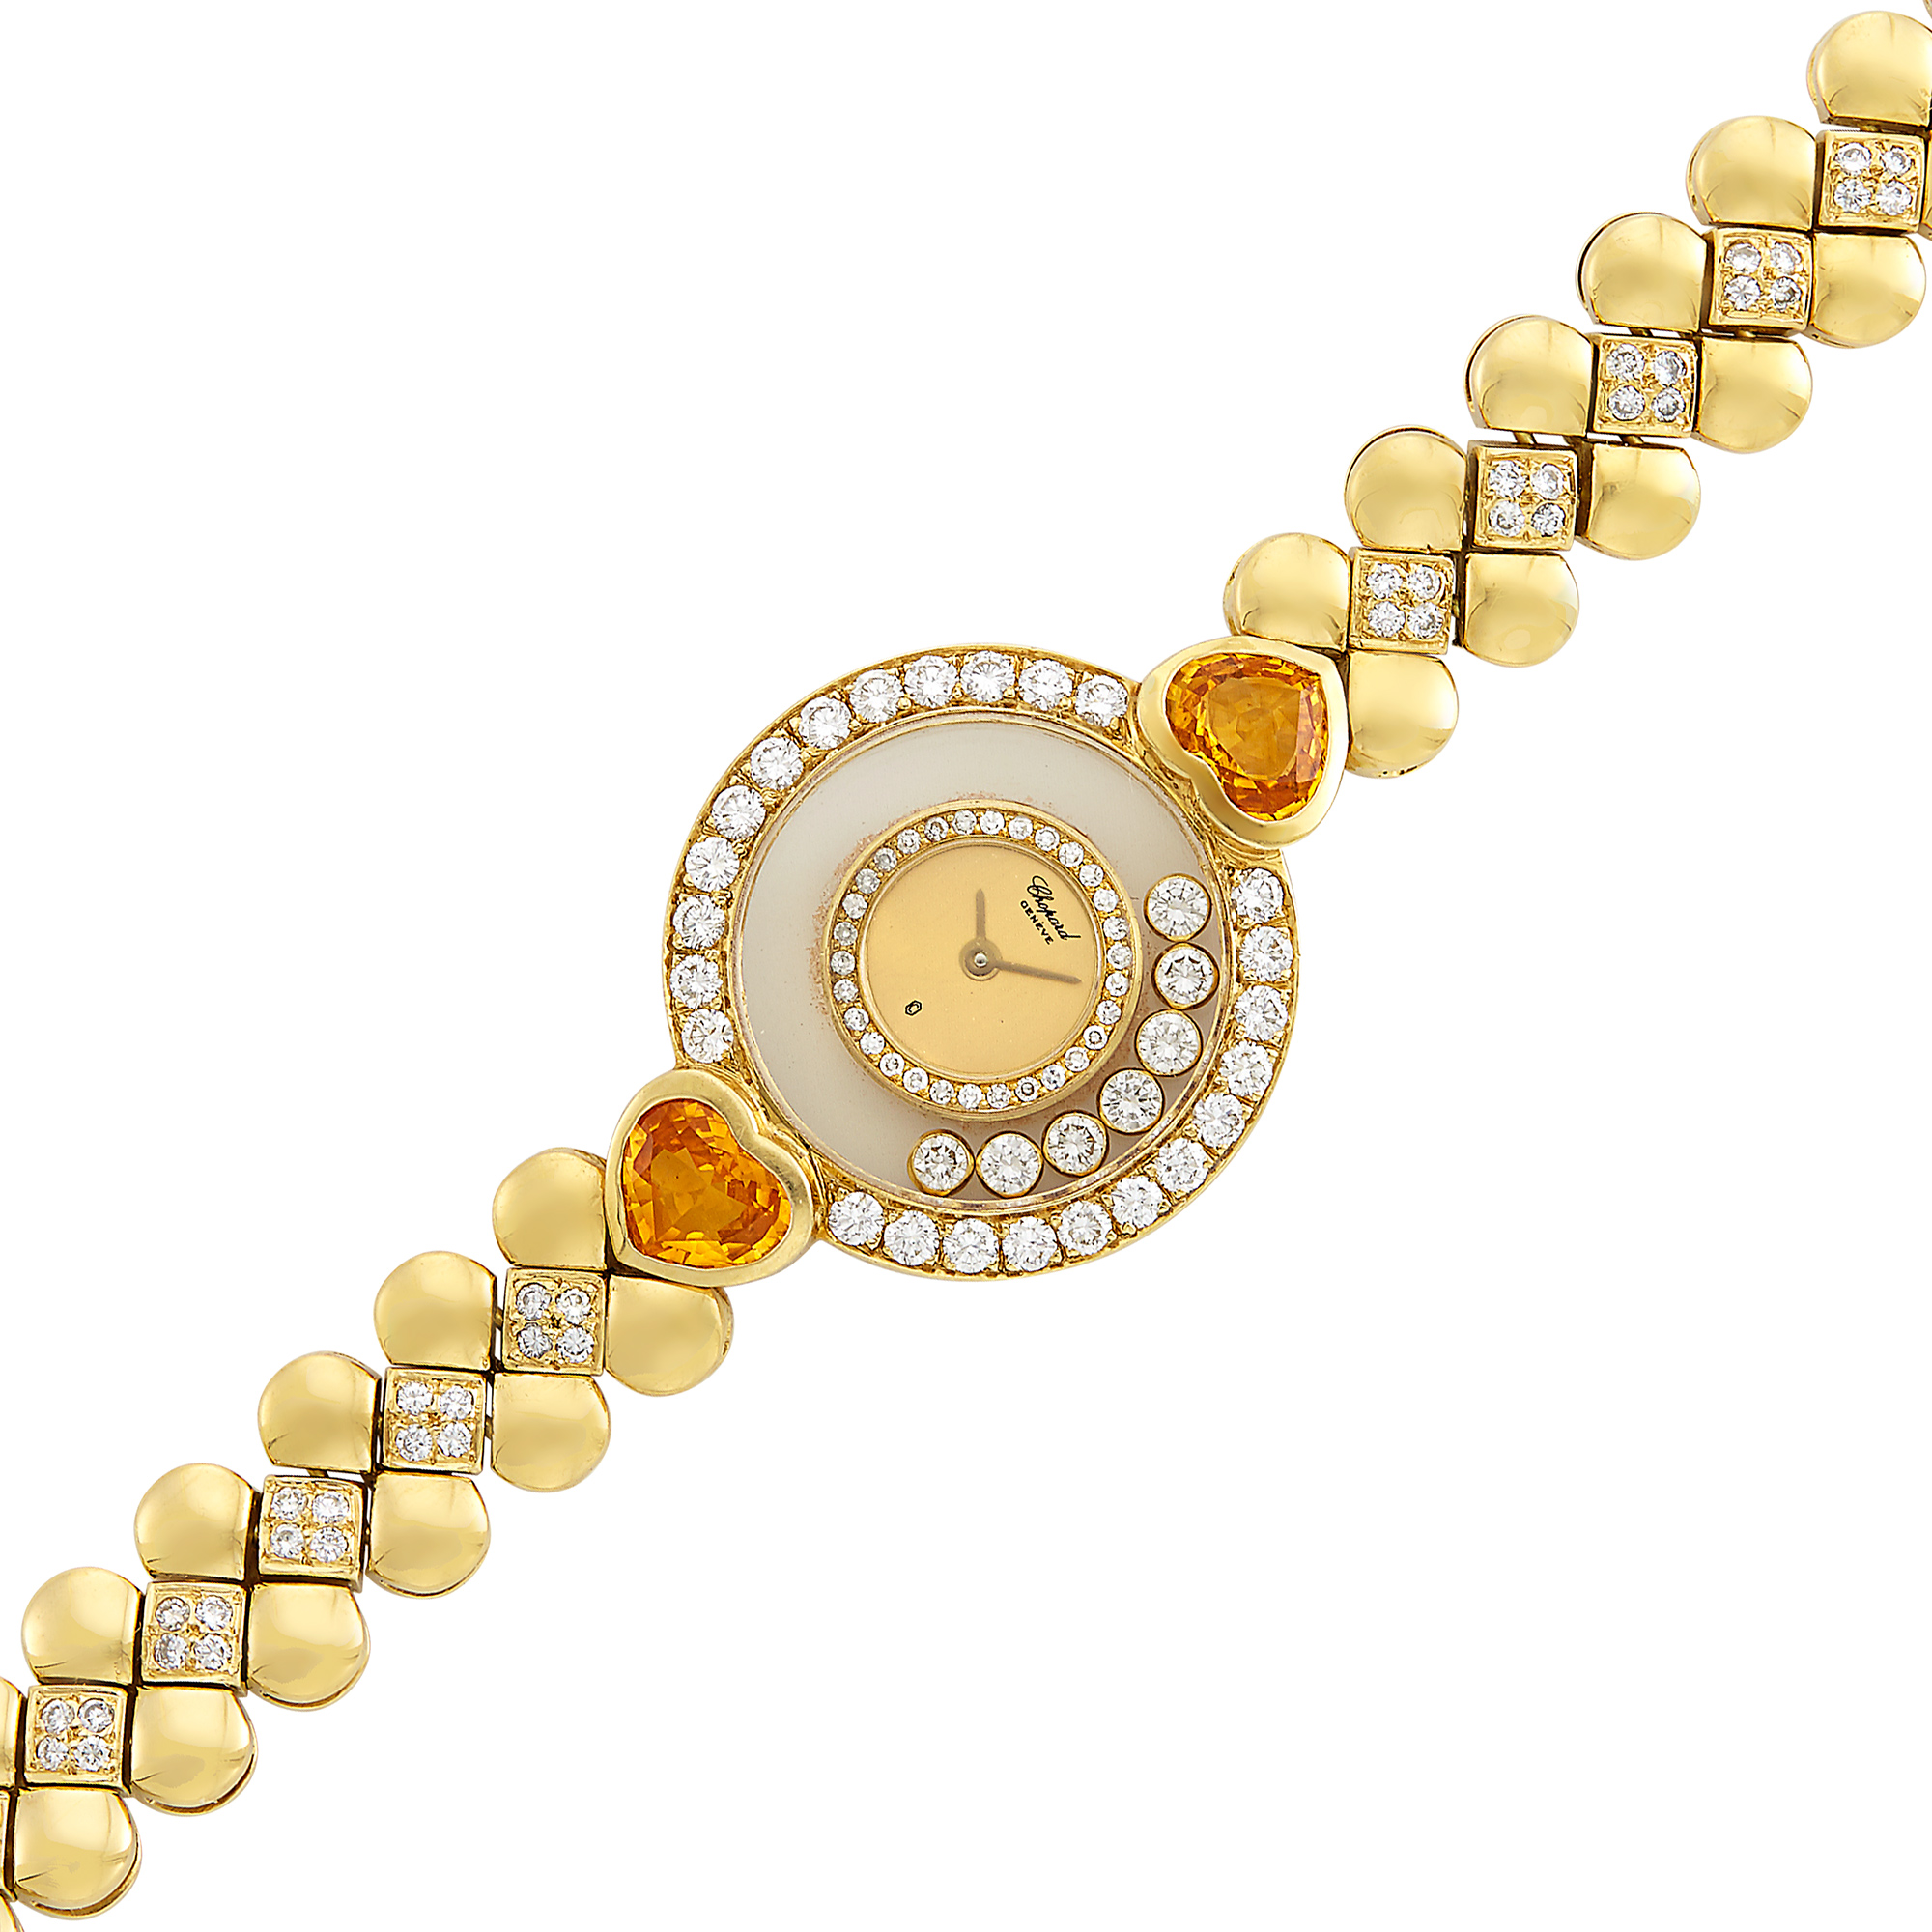 Lot image - Gold, Crystal, Diamond and Citrine Happy Diamonds Wristwatch, Chopard